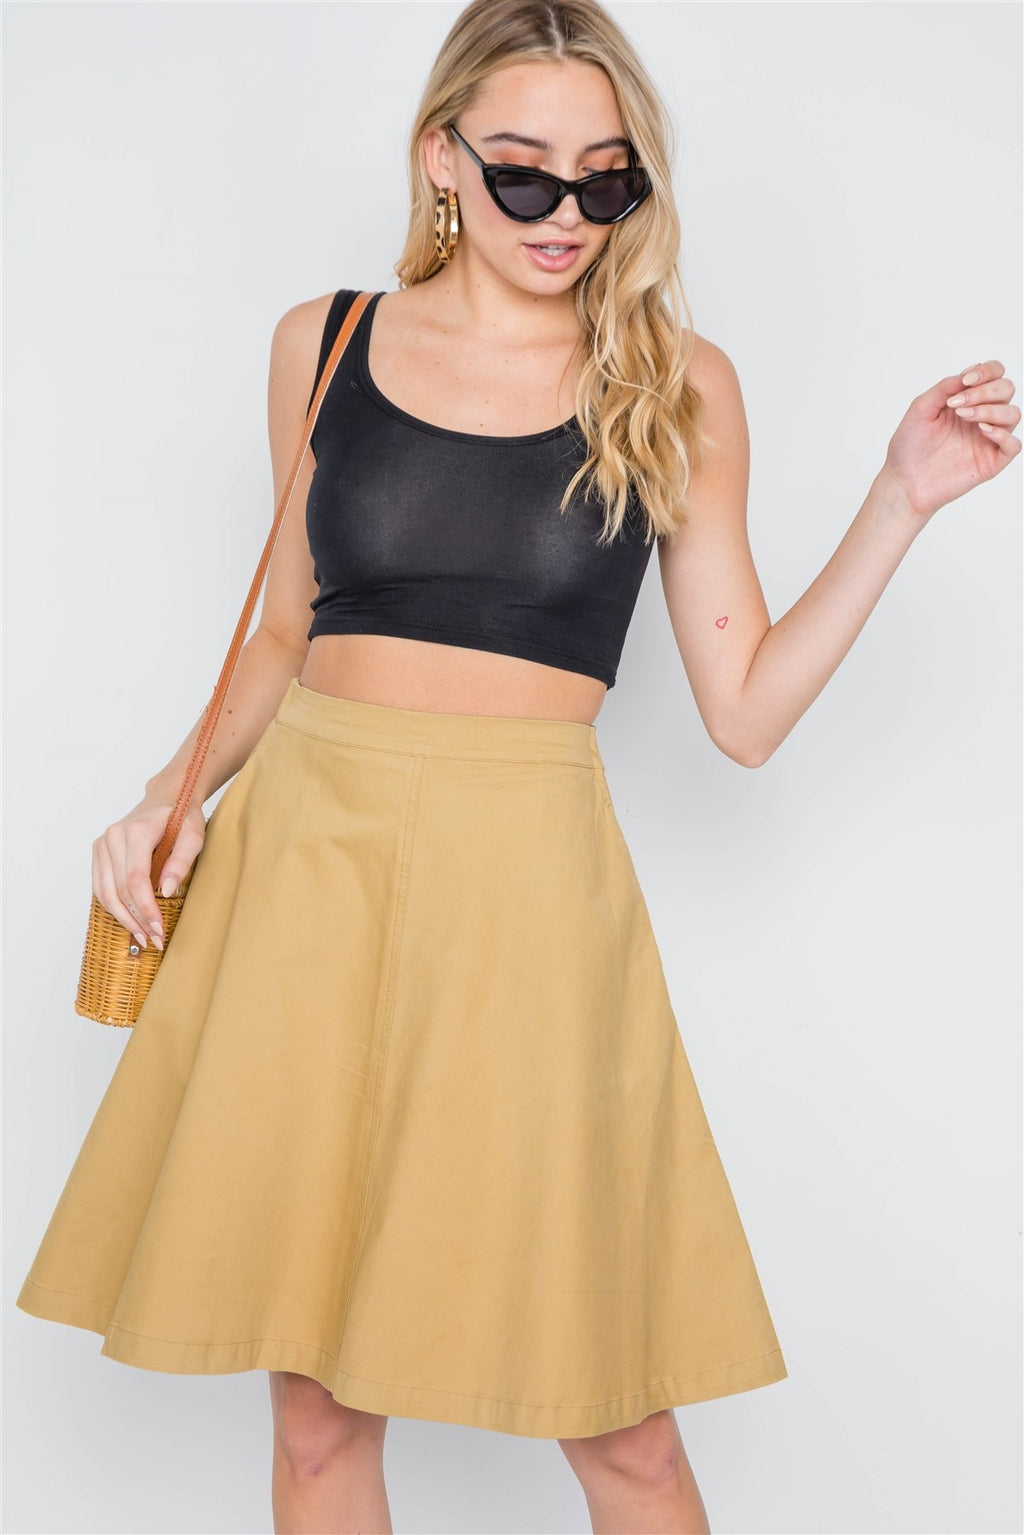 Khaki High Waist Solid A-line Midi Skirt - olivias-room-boutique